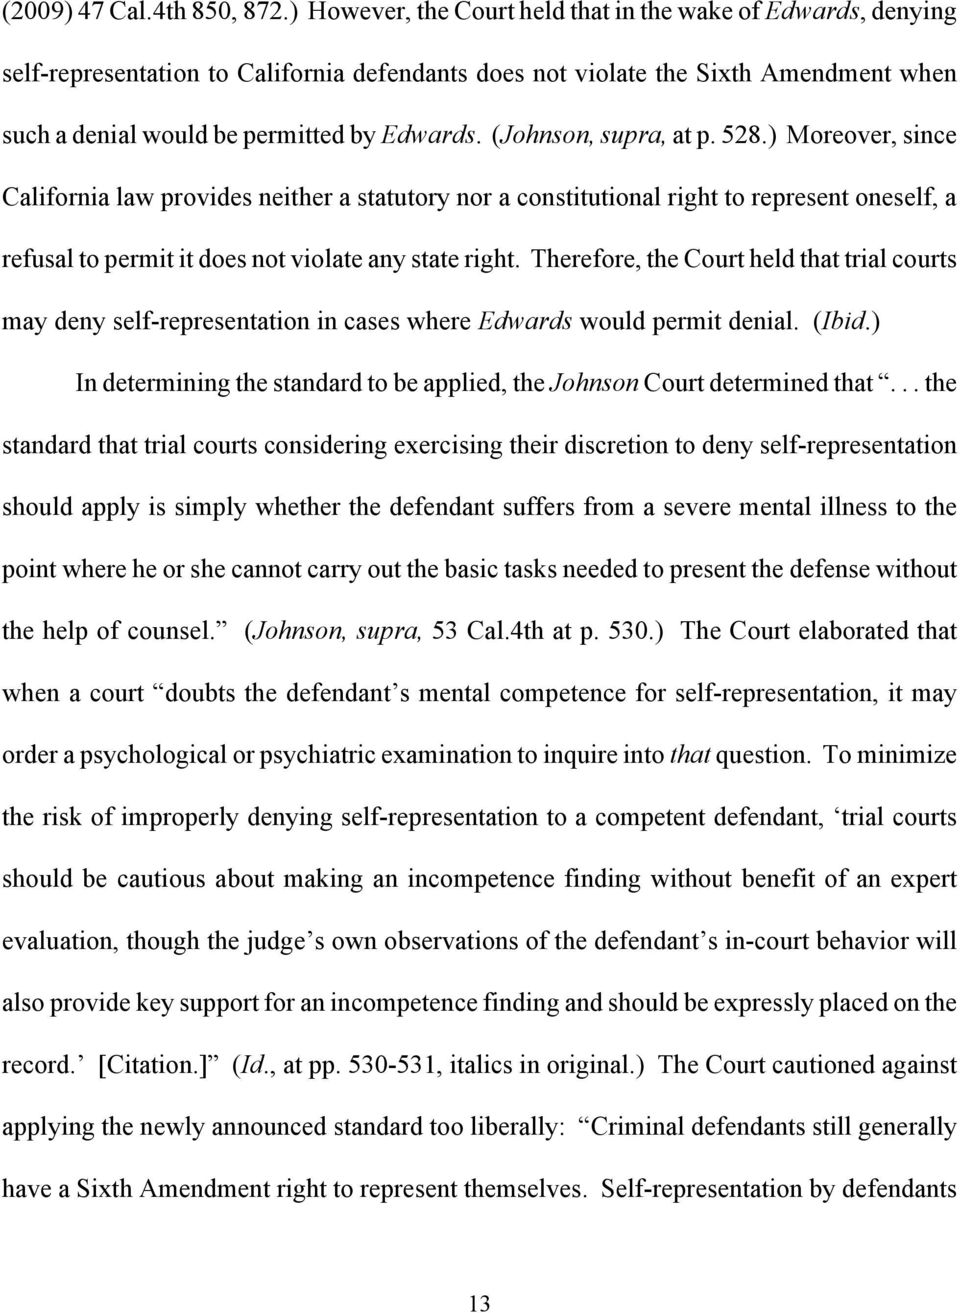 (Johnson, supra, at p. 528.) Moreover, since California law provides neither a statutory nor a constitutional right to represent oneself, a refusal to permit it does not violate any state right.